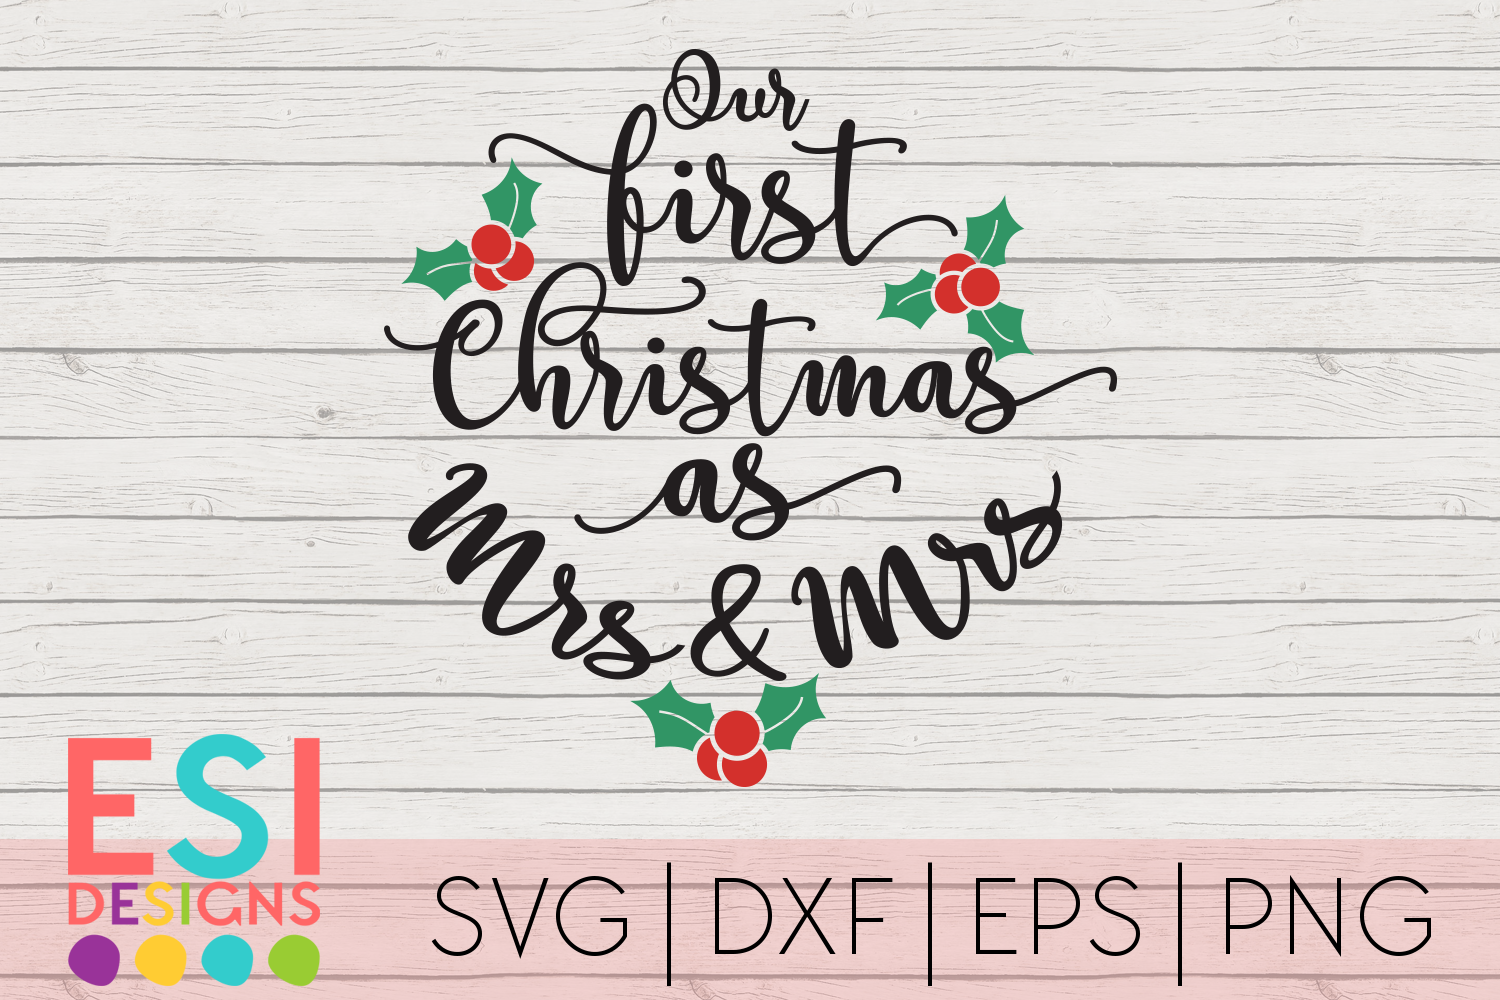 Christmas SVG |First Christmas as Mrs and Mrs|SVG DXF EPS PN example image 1